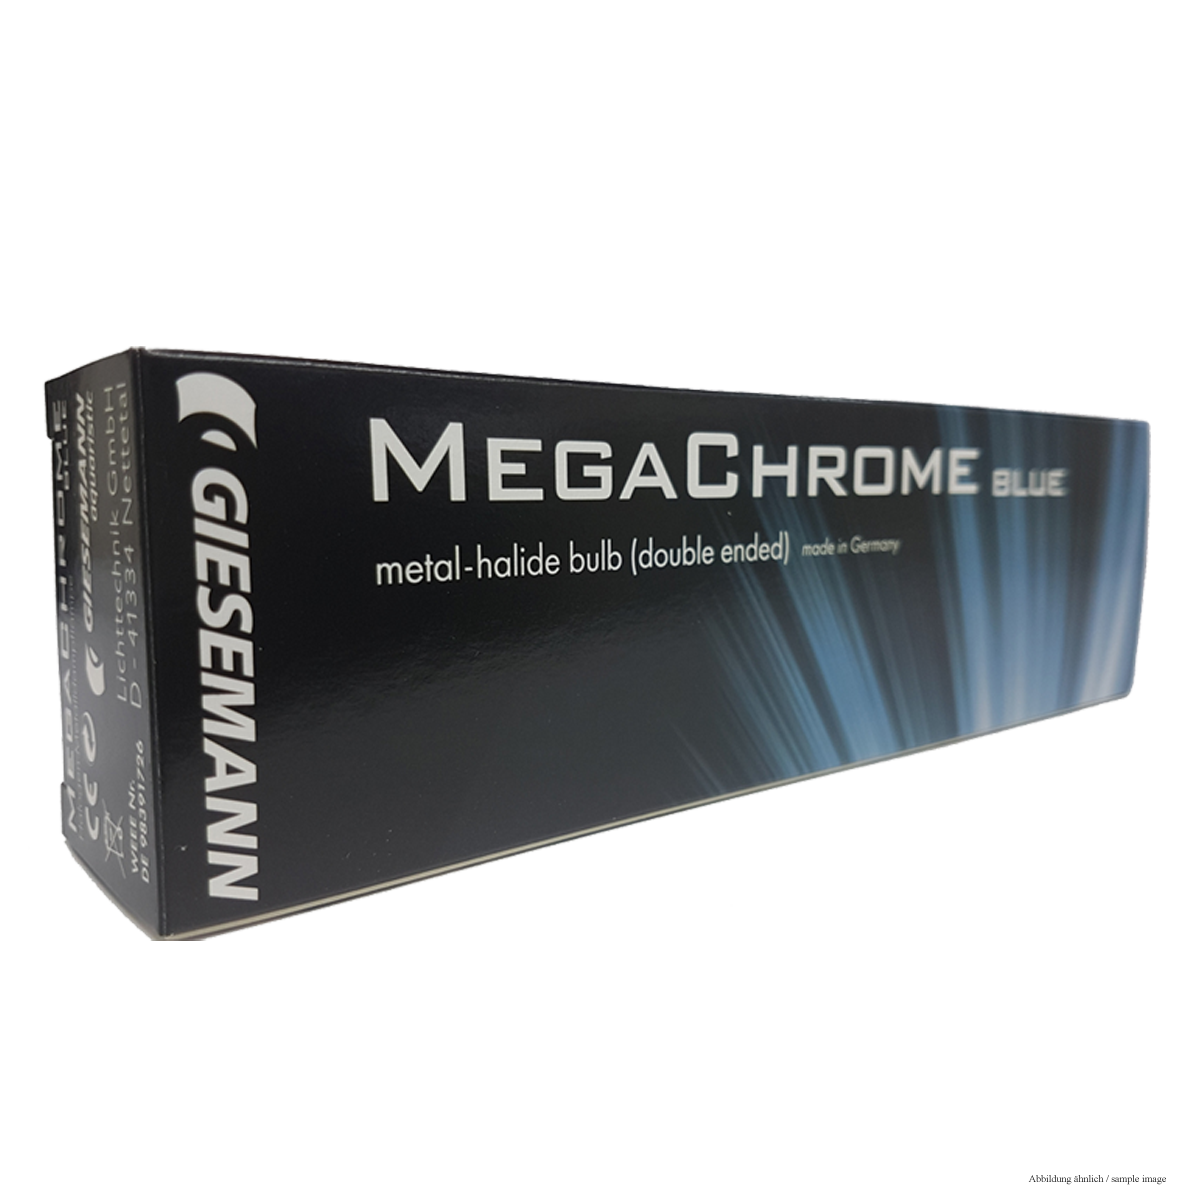 MEGACHROME blue